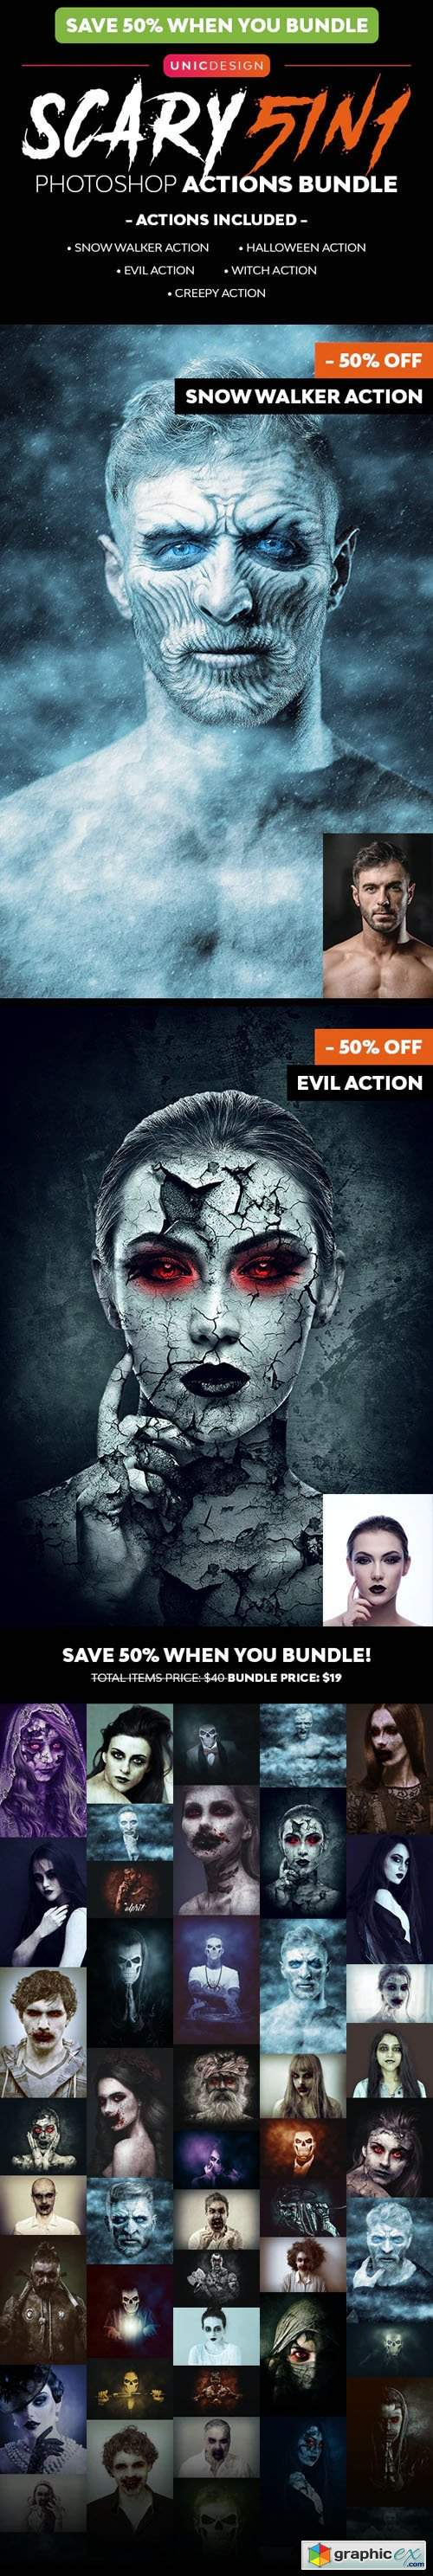 Scary Photoshop Actions - 5in1 Bundle